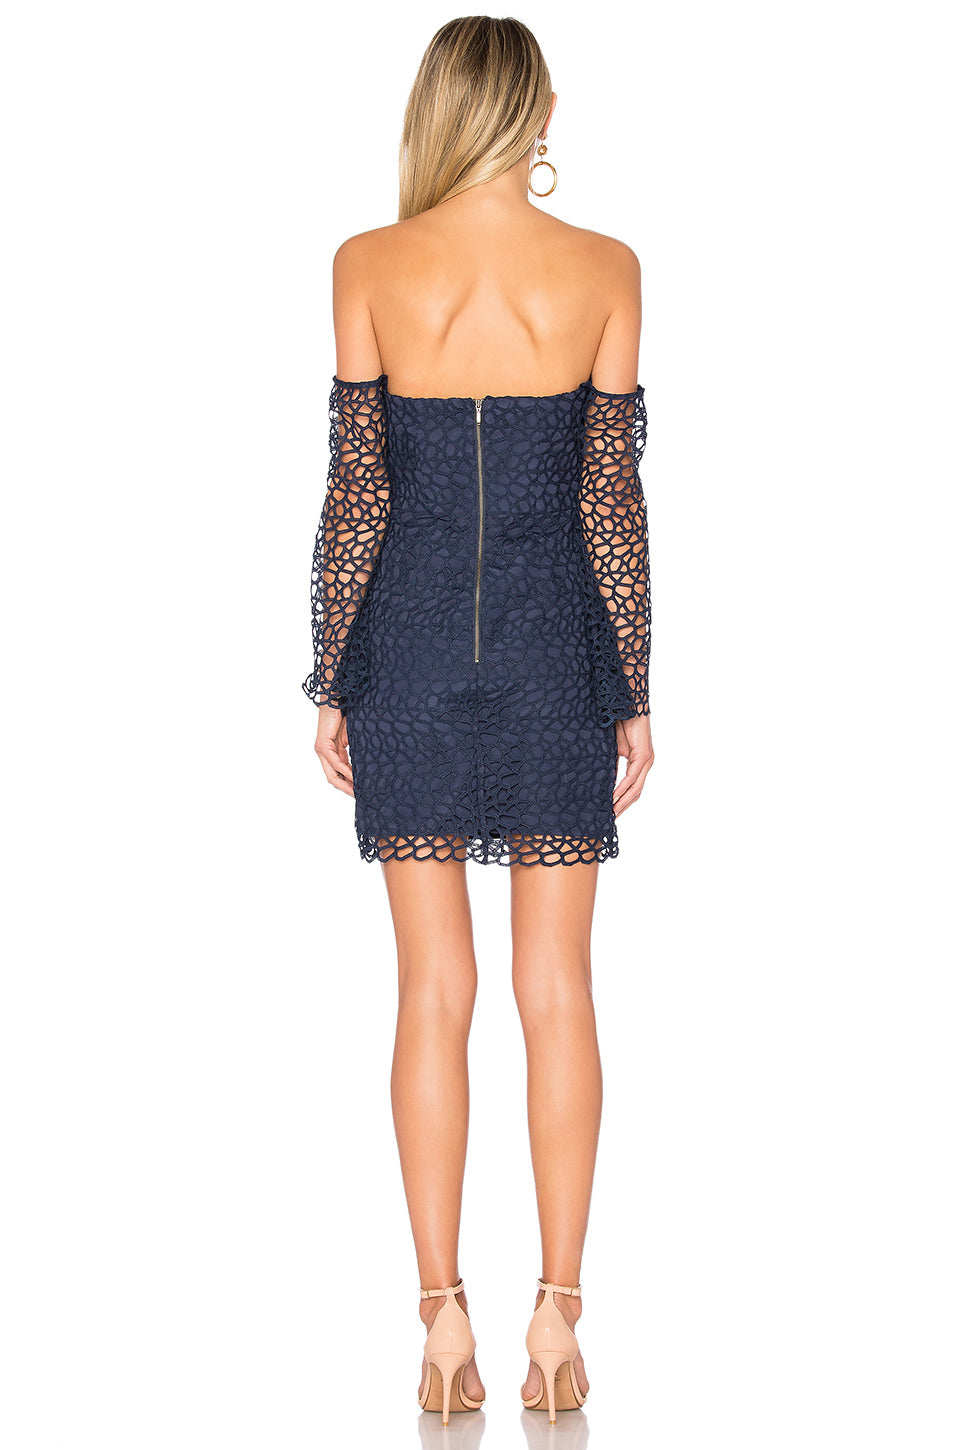 Countdown Lace Mini Dress